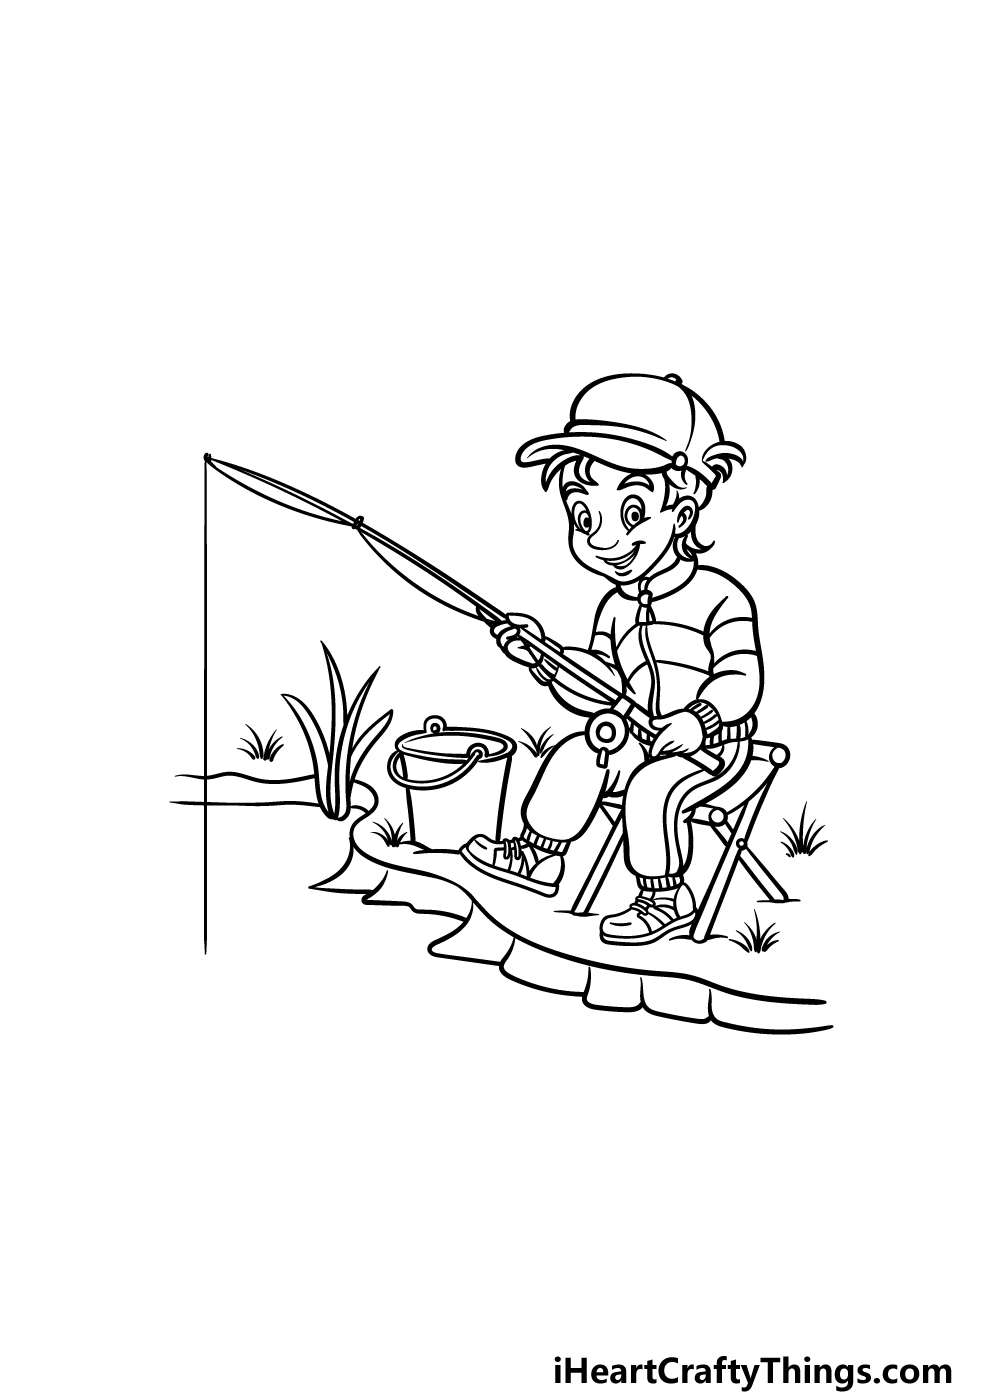 how to draw fishing step 4